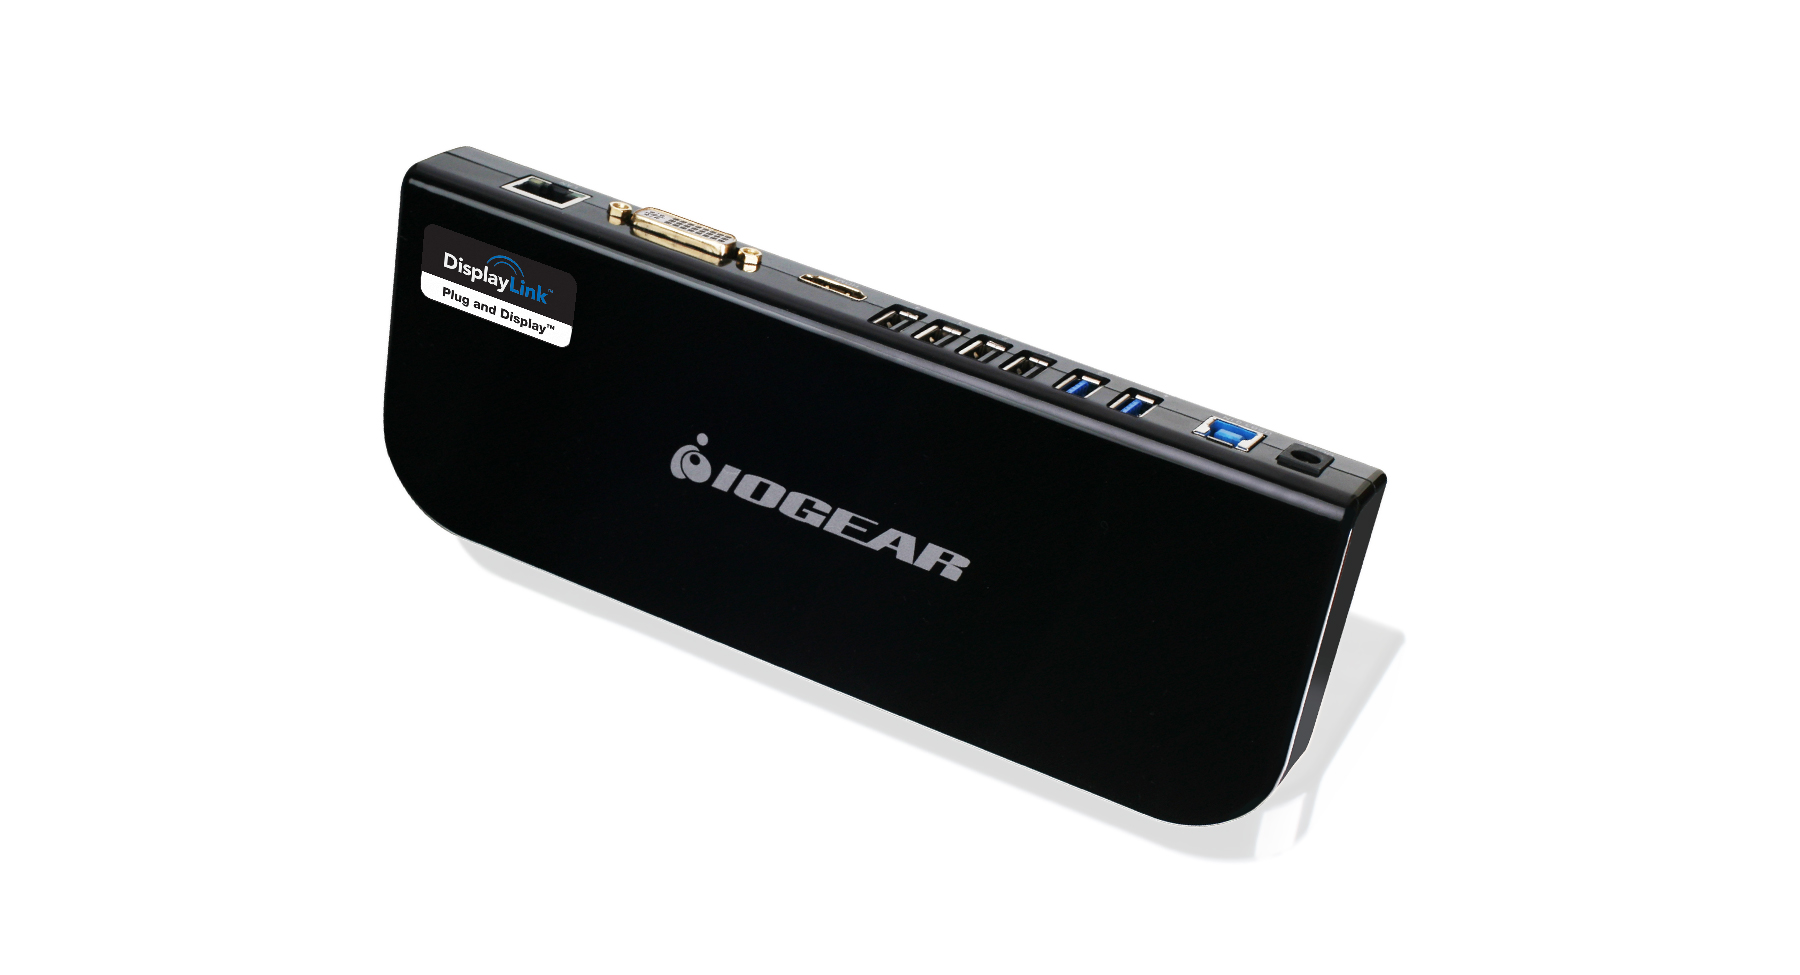 Usb 3 0 Universal Docking Station With Adapter